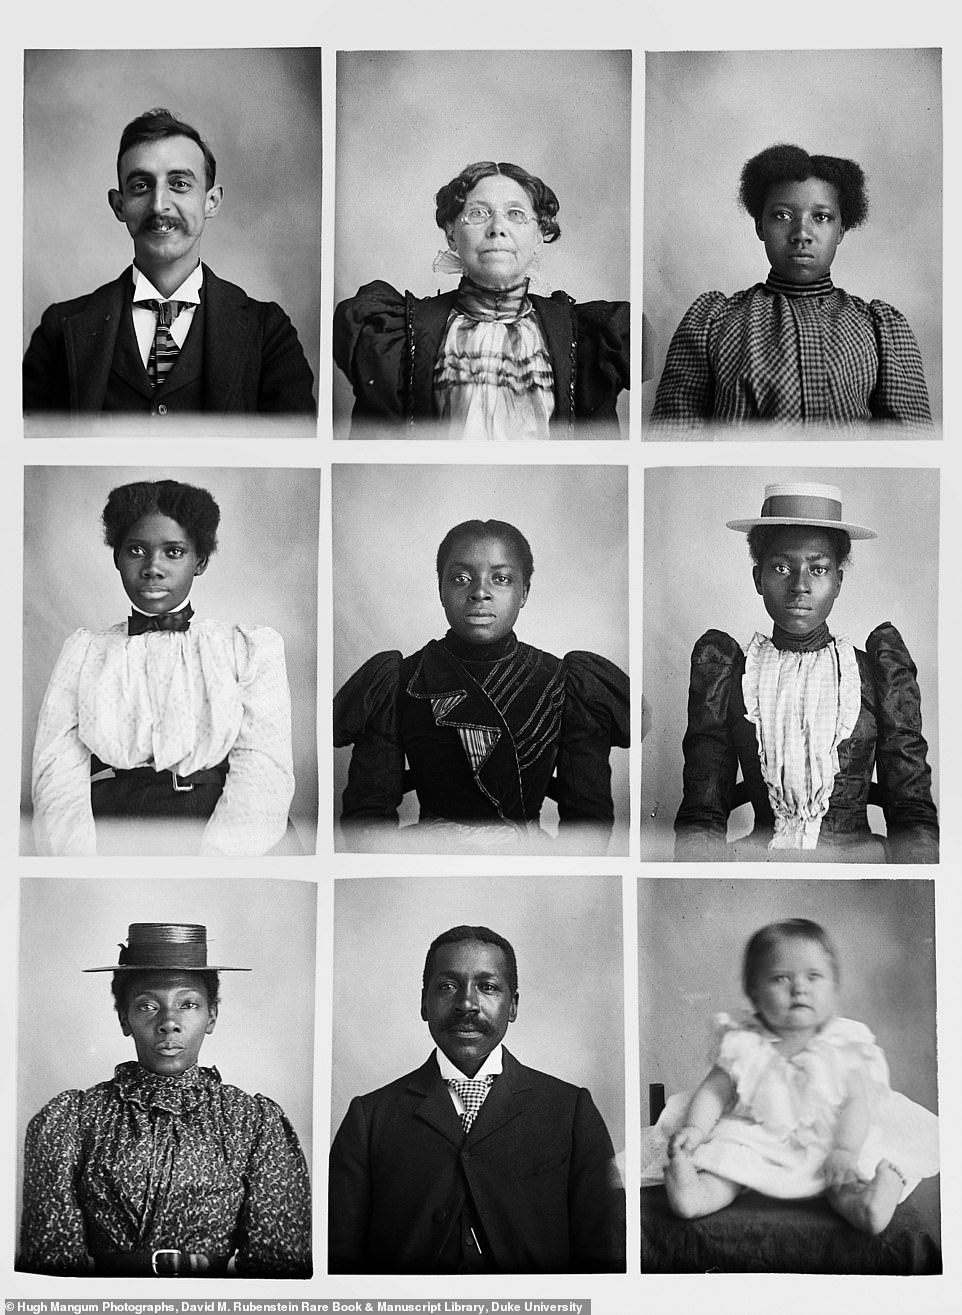 In this collection of portraits Hugh Mangum pictured himself in the top left. He traveled across much of the South and pictured subjects of various ages from across racial and economic divides. Though the American South of his era was marked by disenfranchisement, segregation and inequality, Mangum portrayed all his sitters with candor and heart, as well as showing them as individuals, author Sarah Stacke said